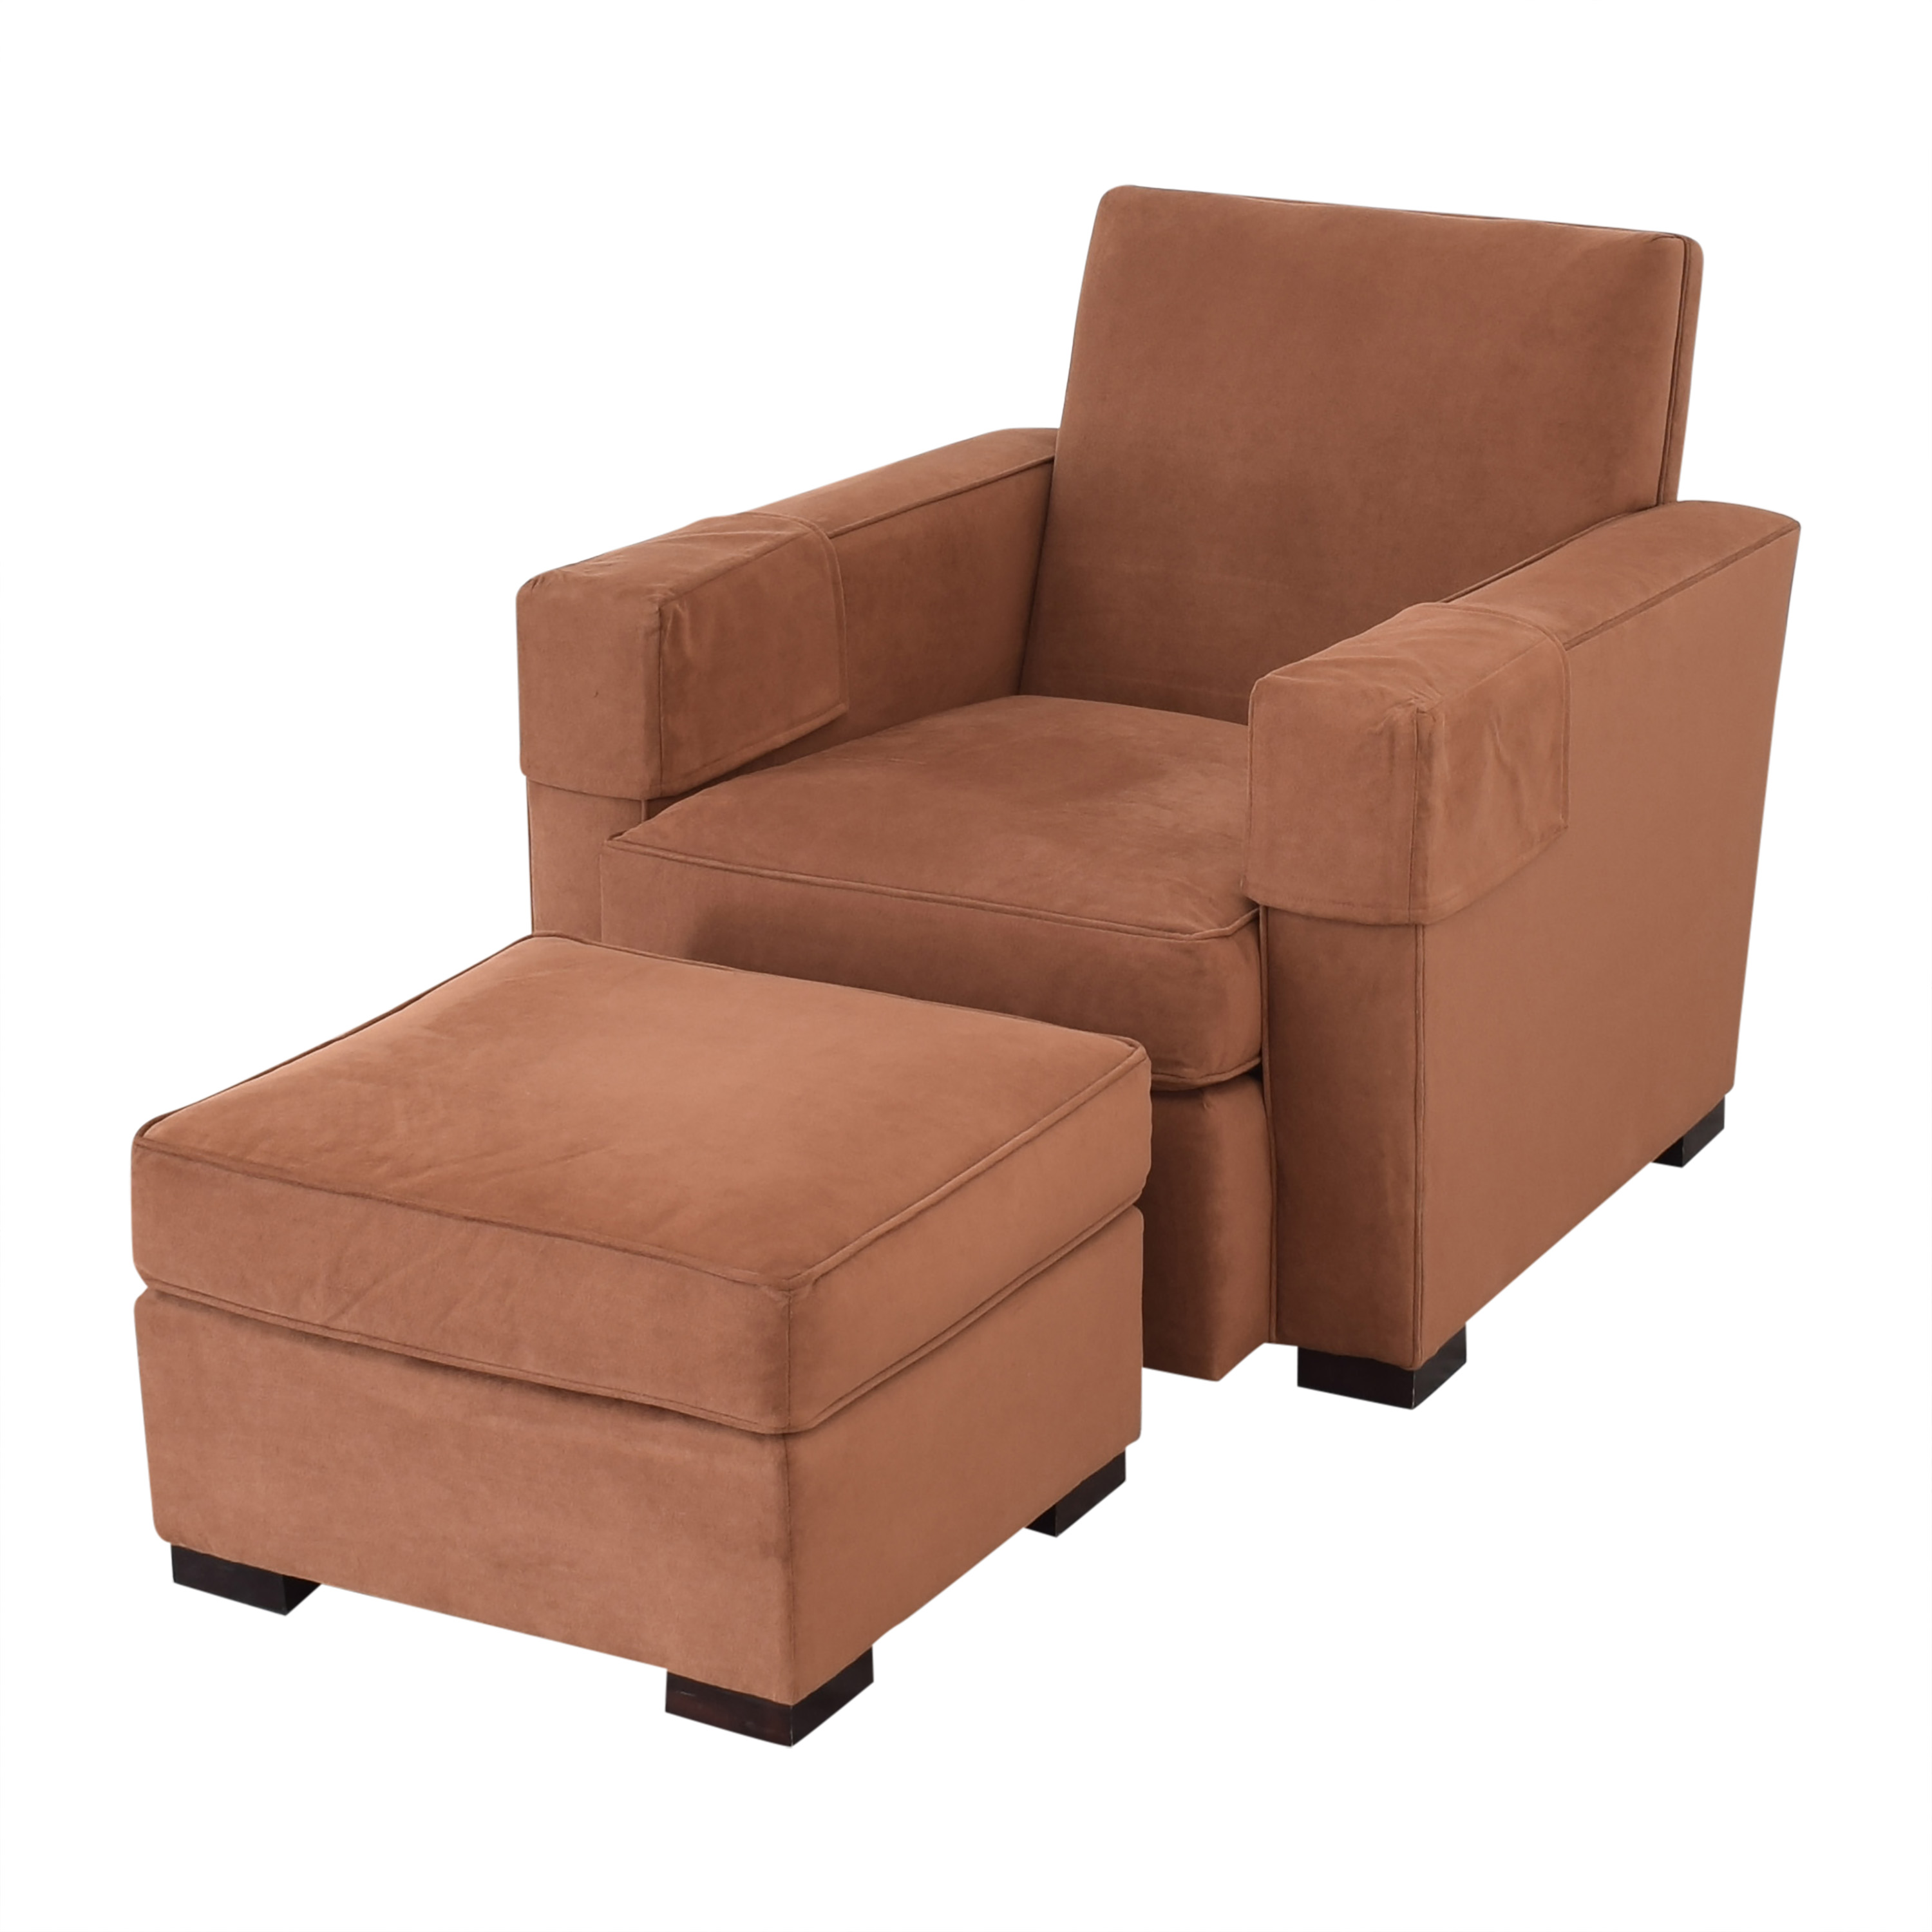 Hickory Chair Hickory Chair Ultra Suede Chair and Ottoman used